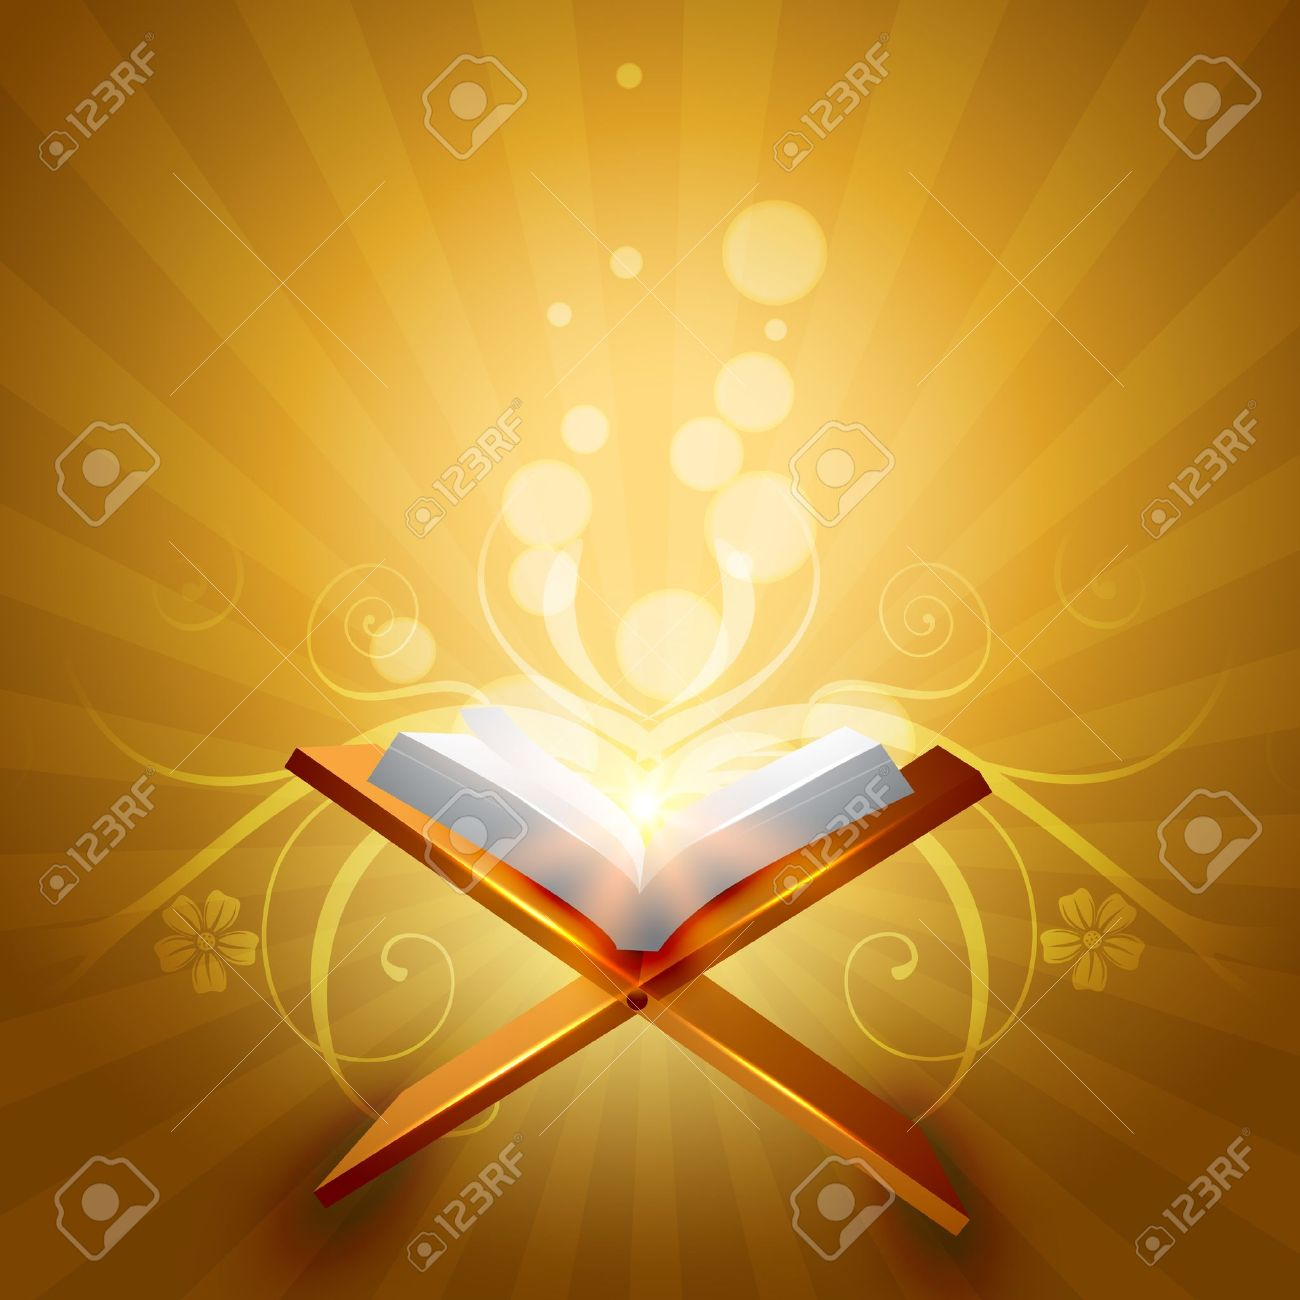 related keywords suggestions for quran cover design vector quran cover design vector